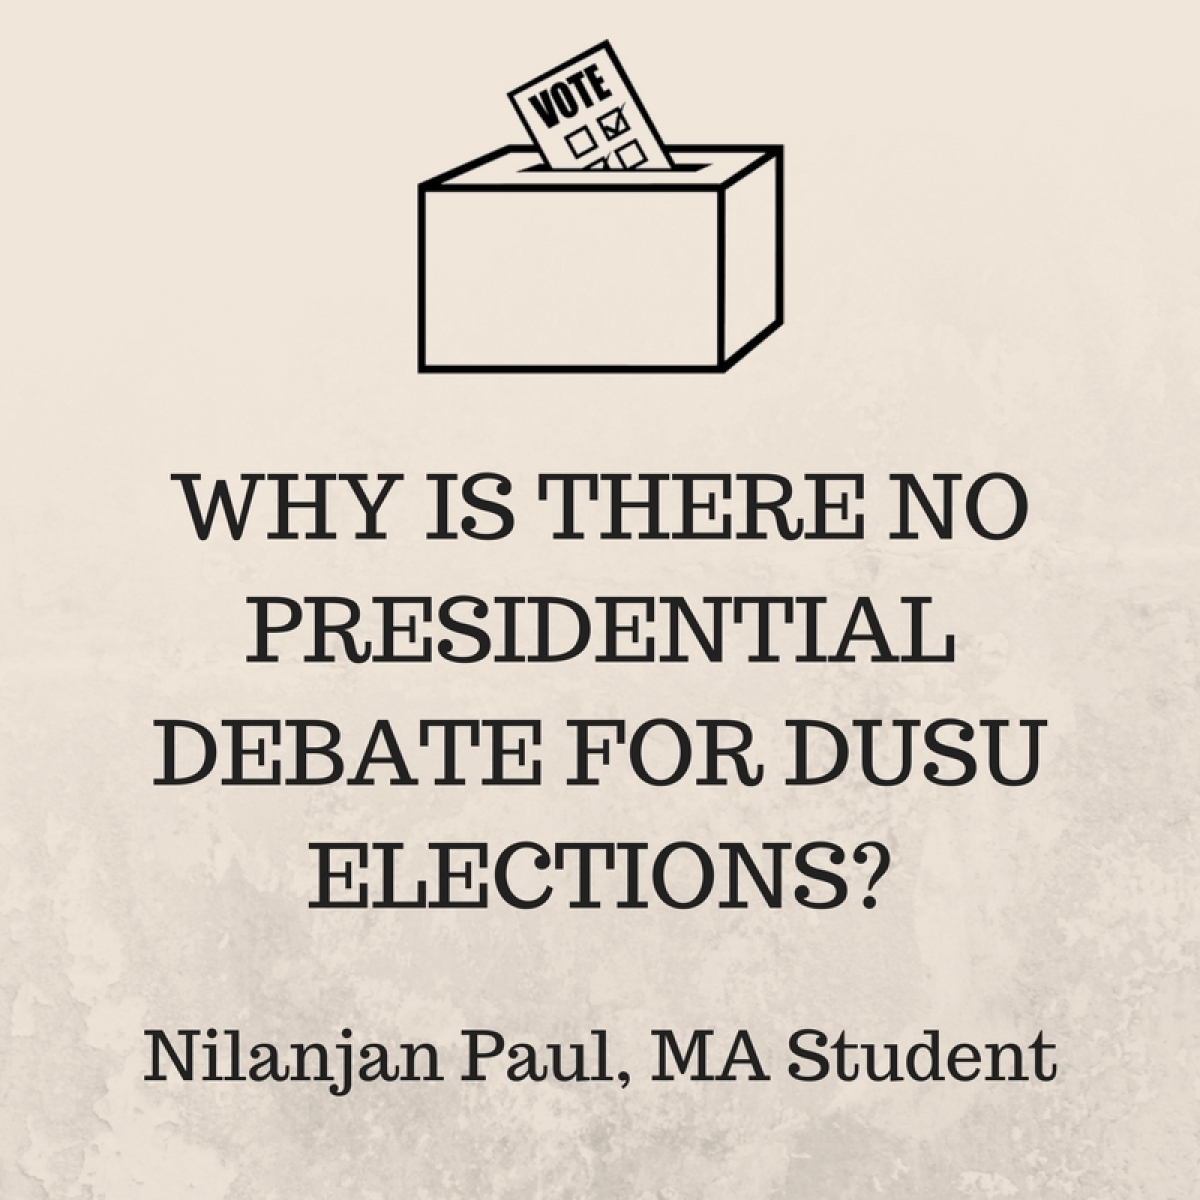 DUSU Elections: Candidates Rain Promises, But Students Not